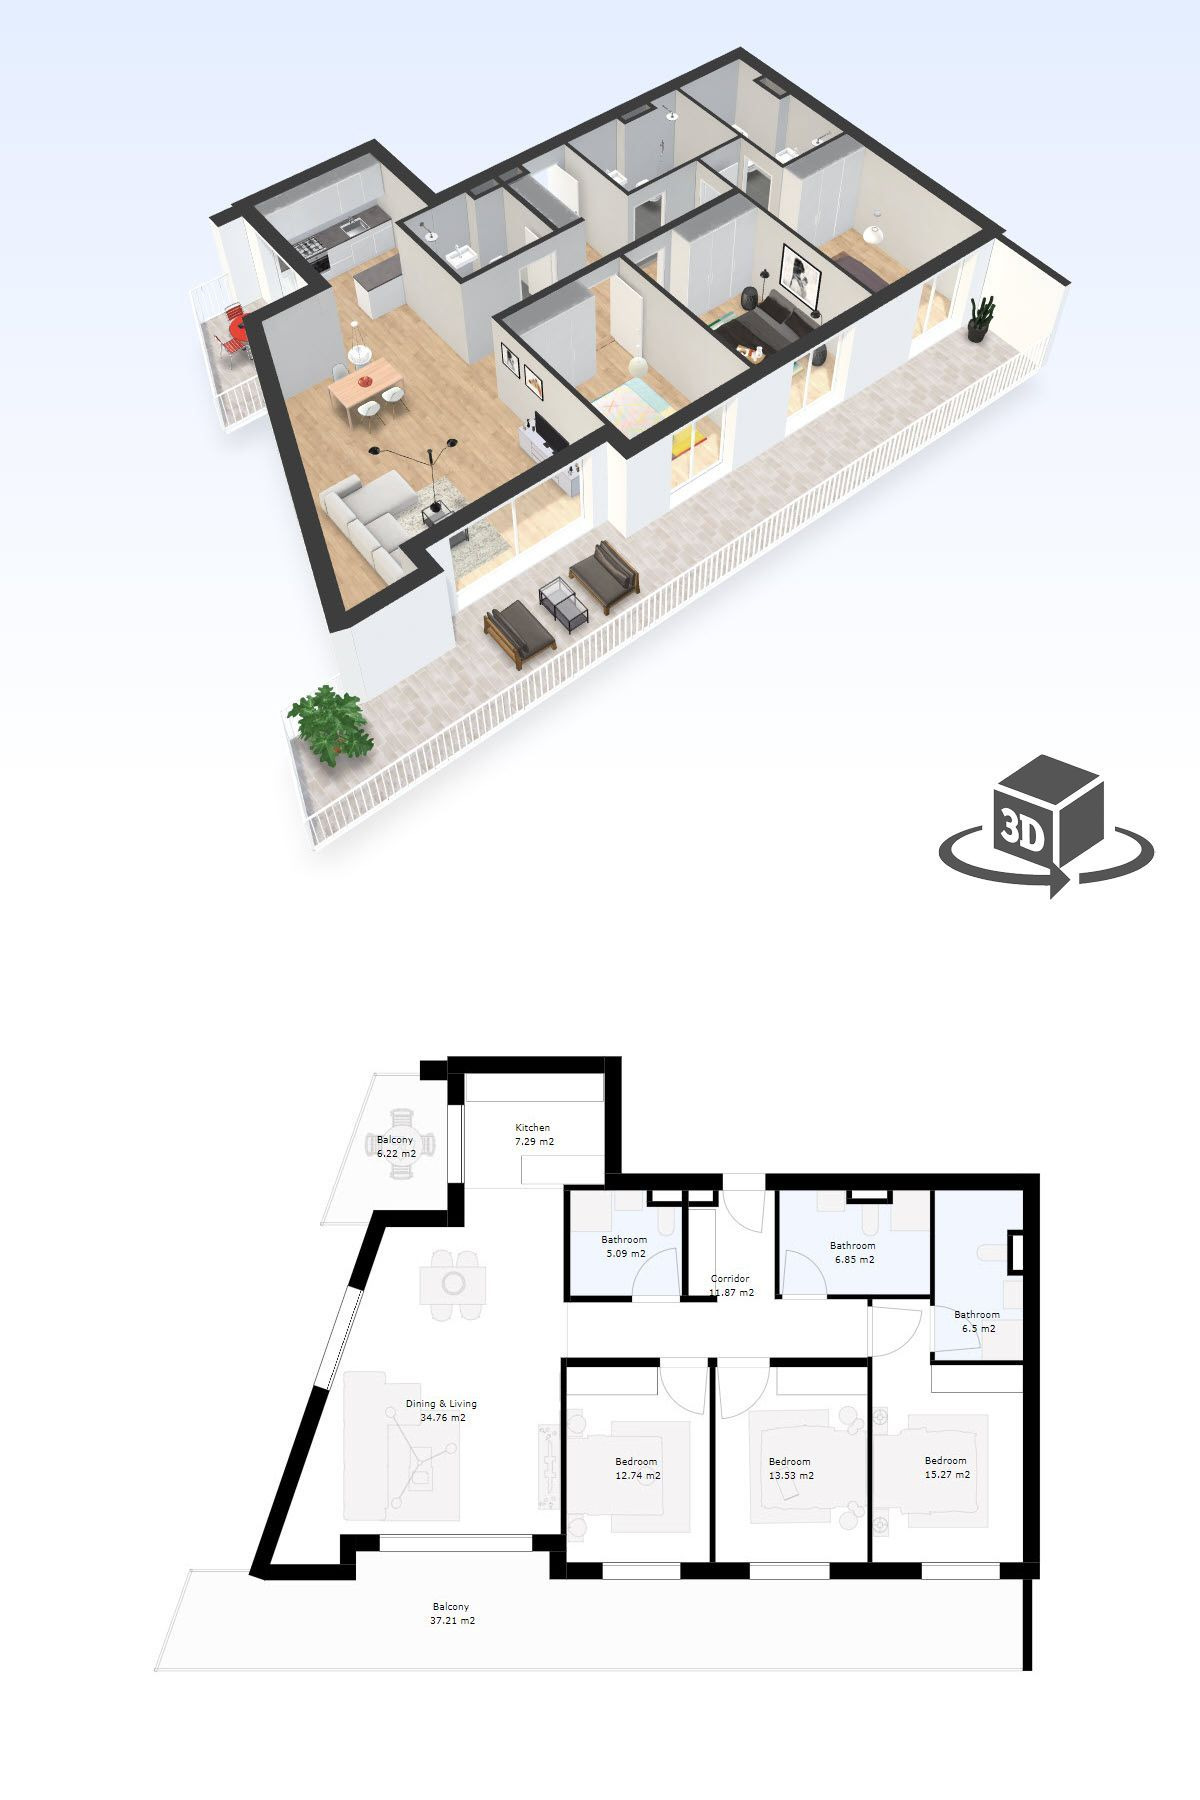 House Models and Plans Best Of 3 Bedroom Apartment Interactive 3d Floor Plan Model